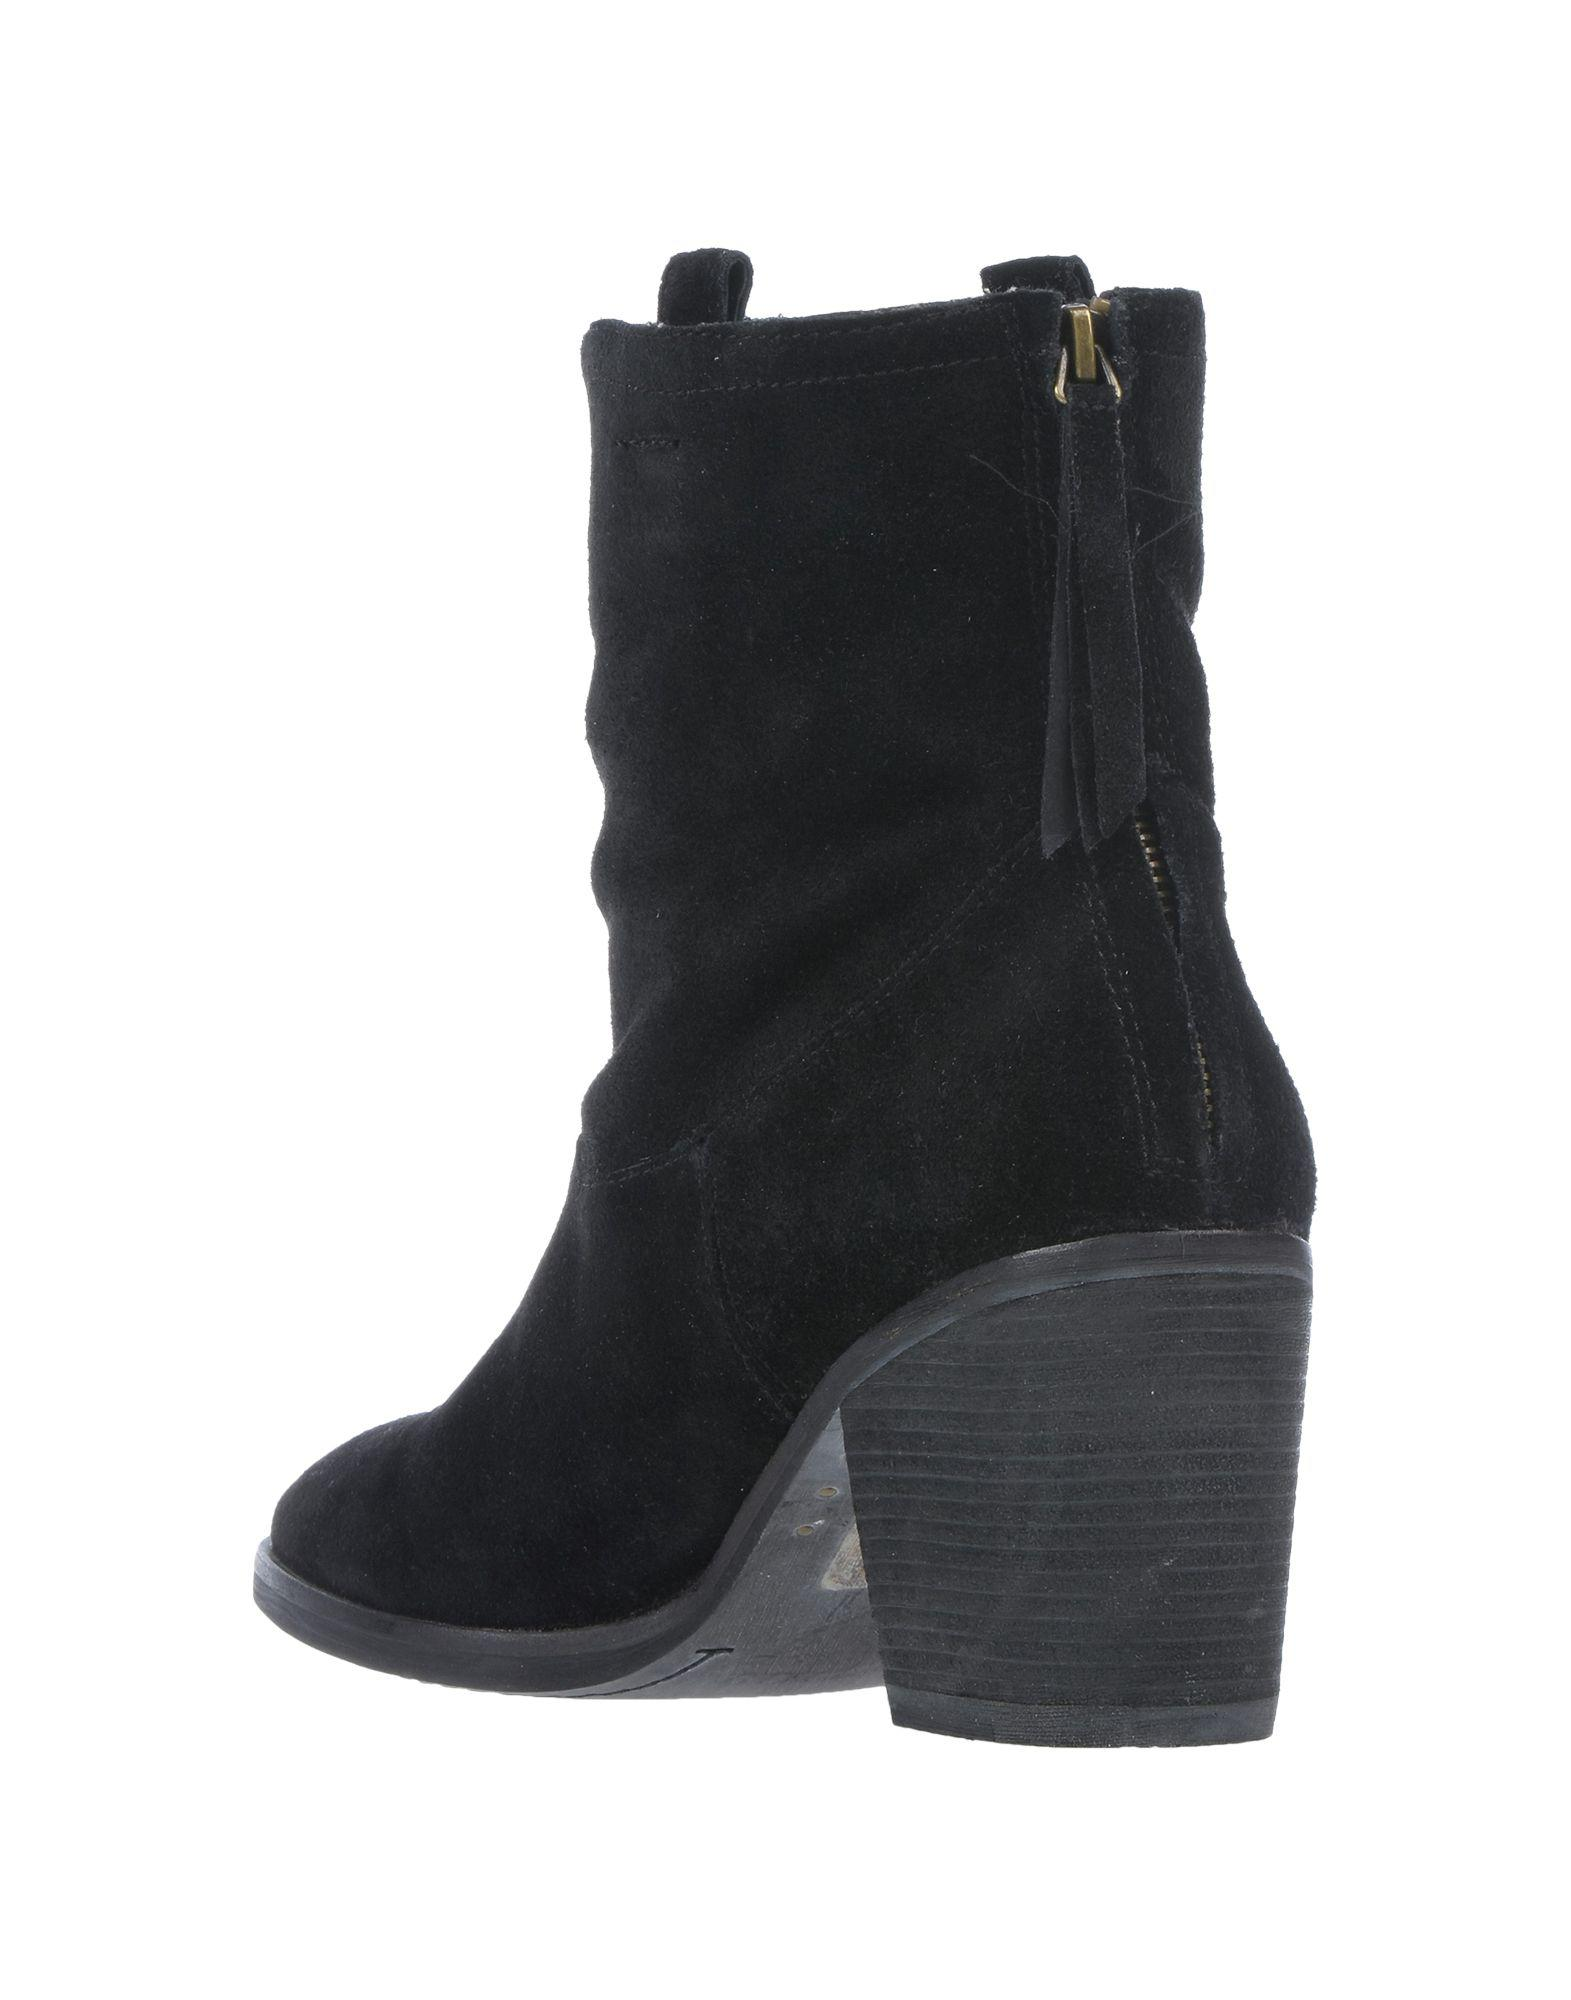 5ccfd959c Lyst - Sam Edelman Ankle Boots in Black